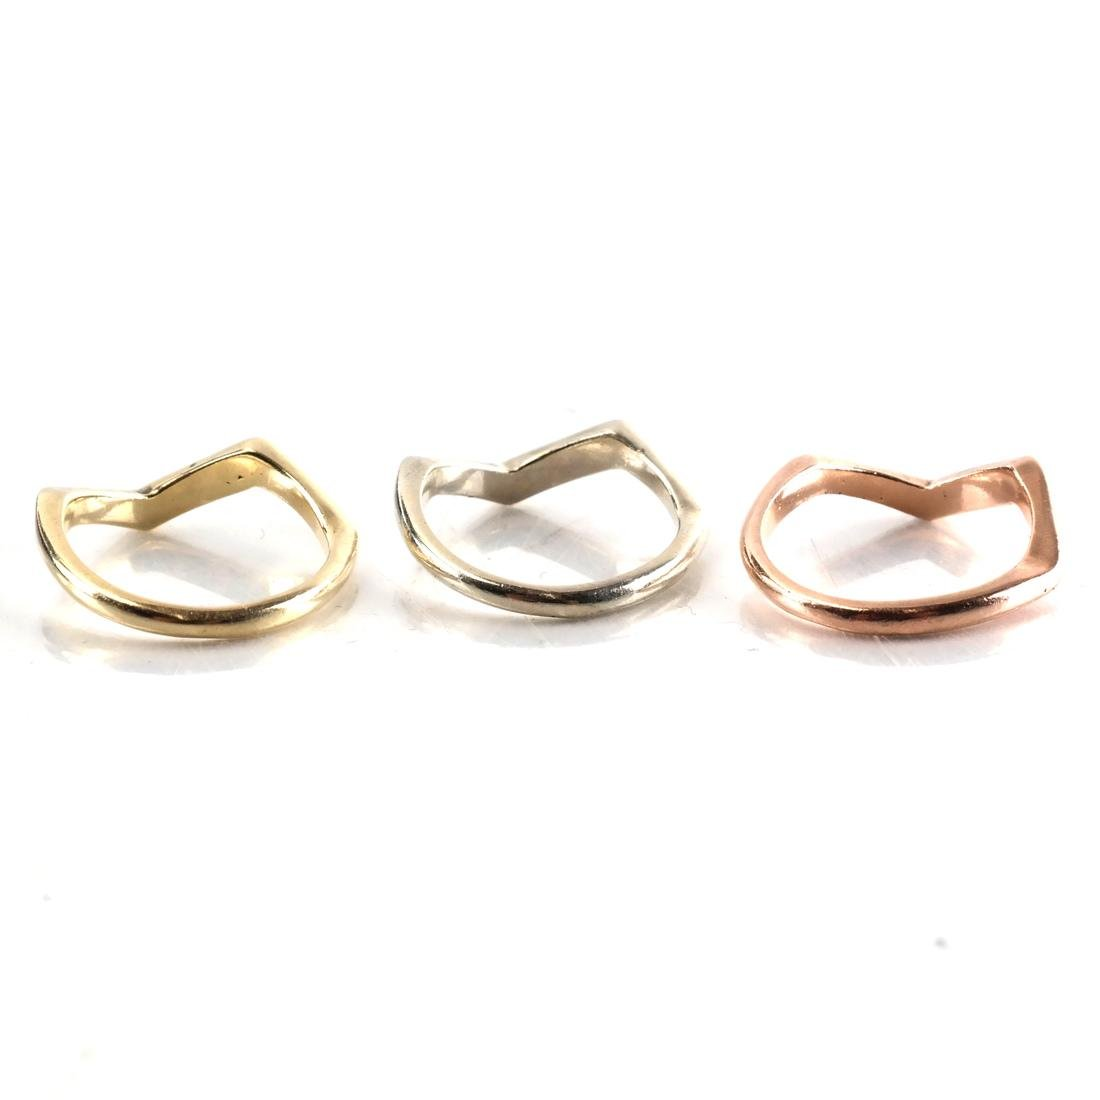 Three Tricolor Gold Rings - 2